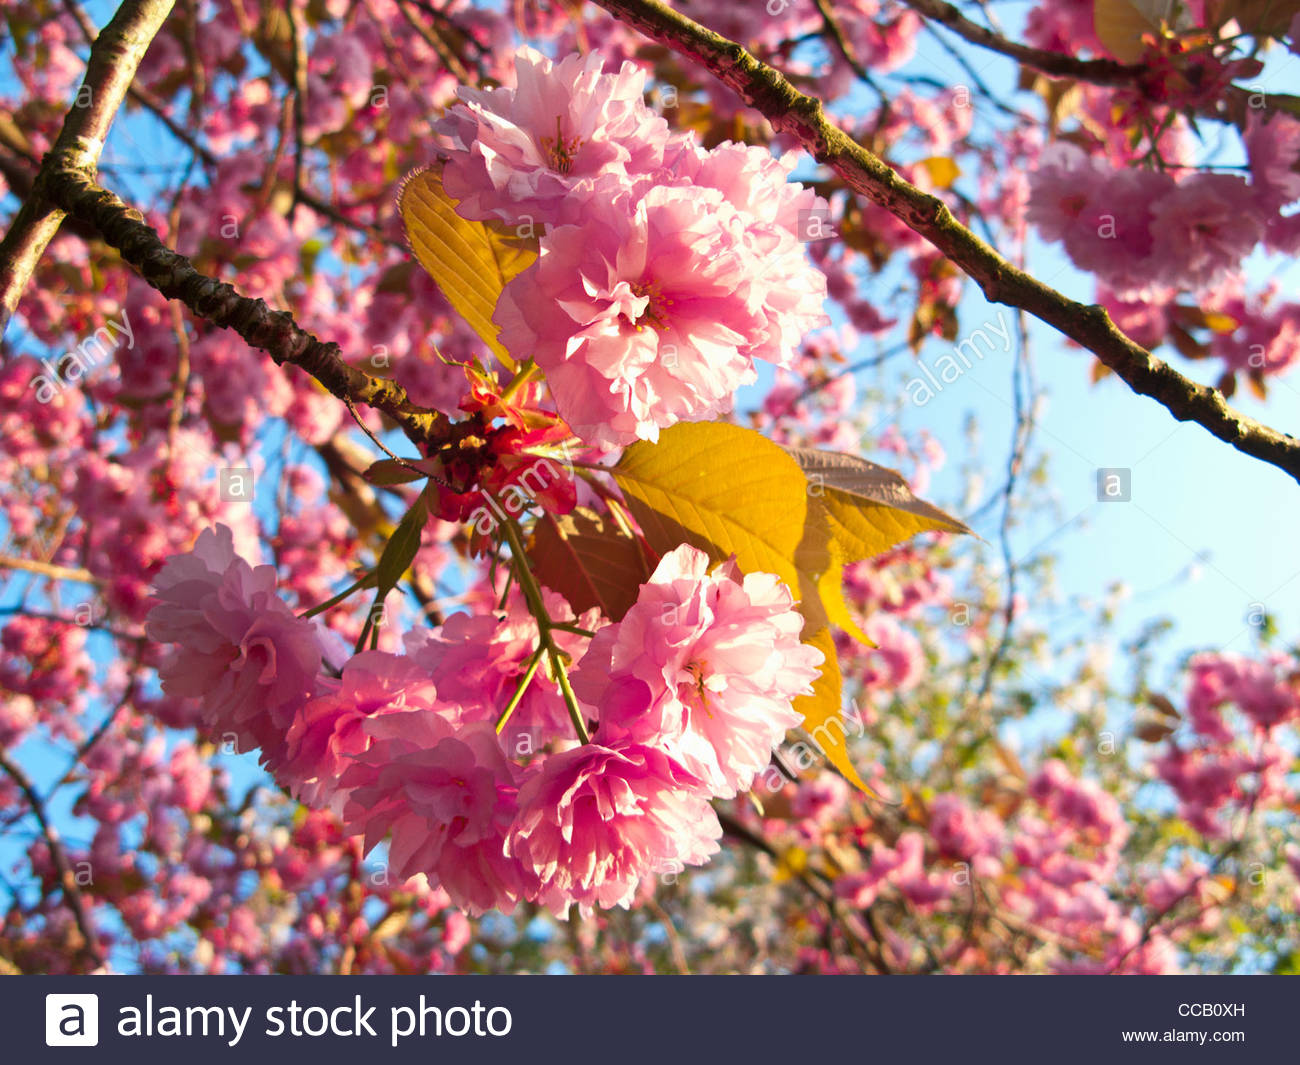 Close up of abundant pink, spring flowers blooming on branch - Stock Image